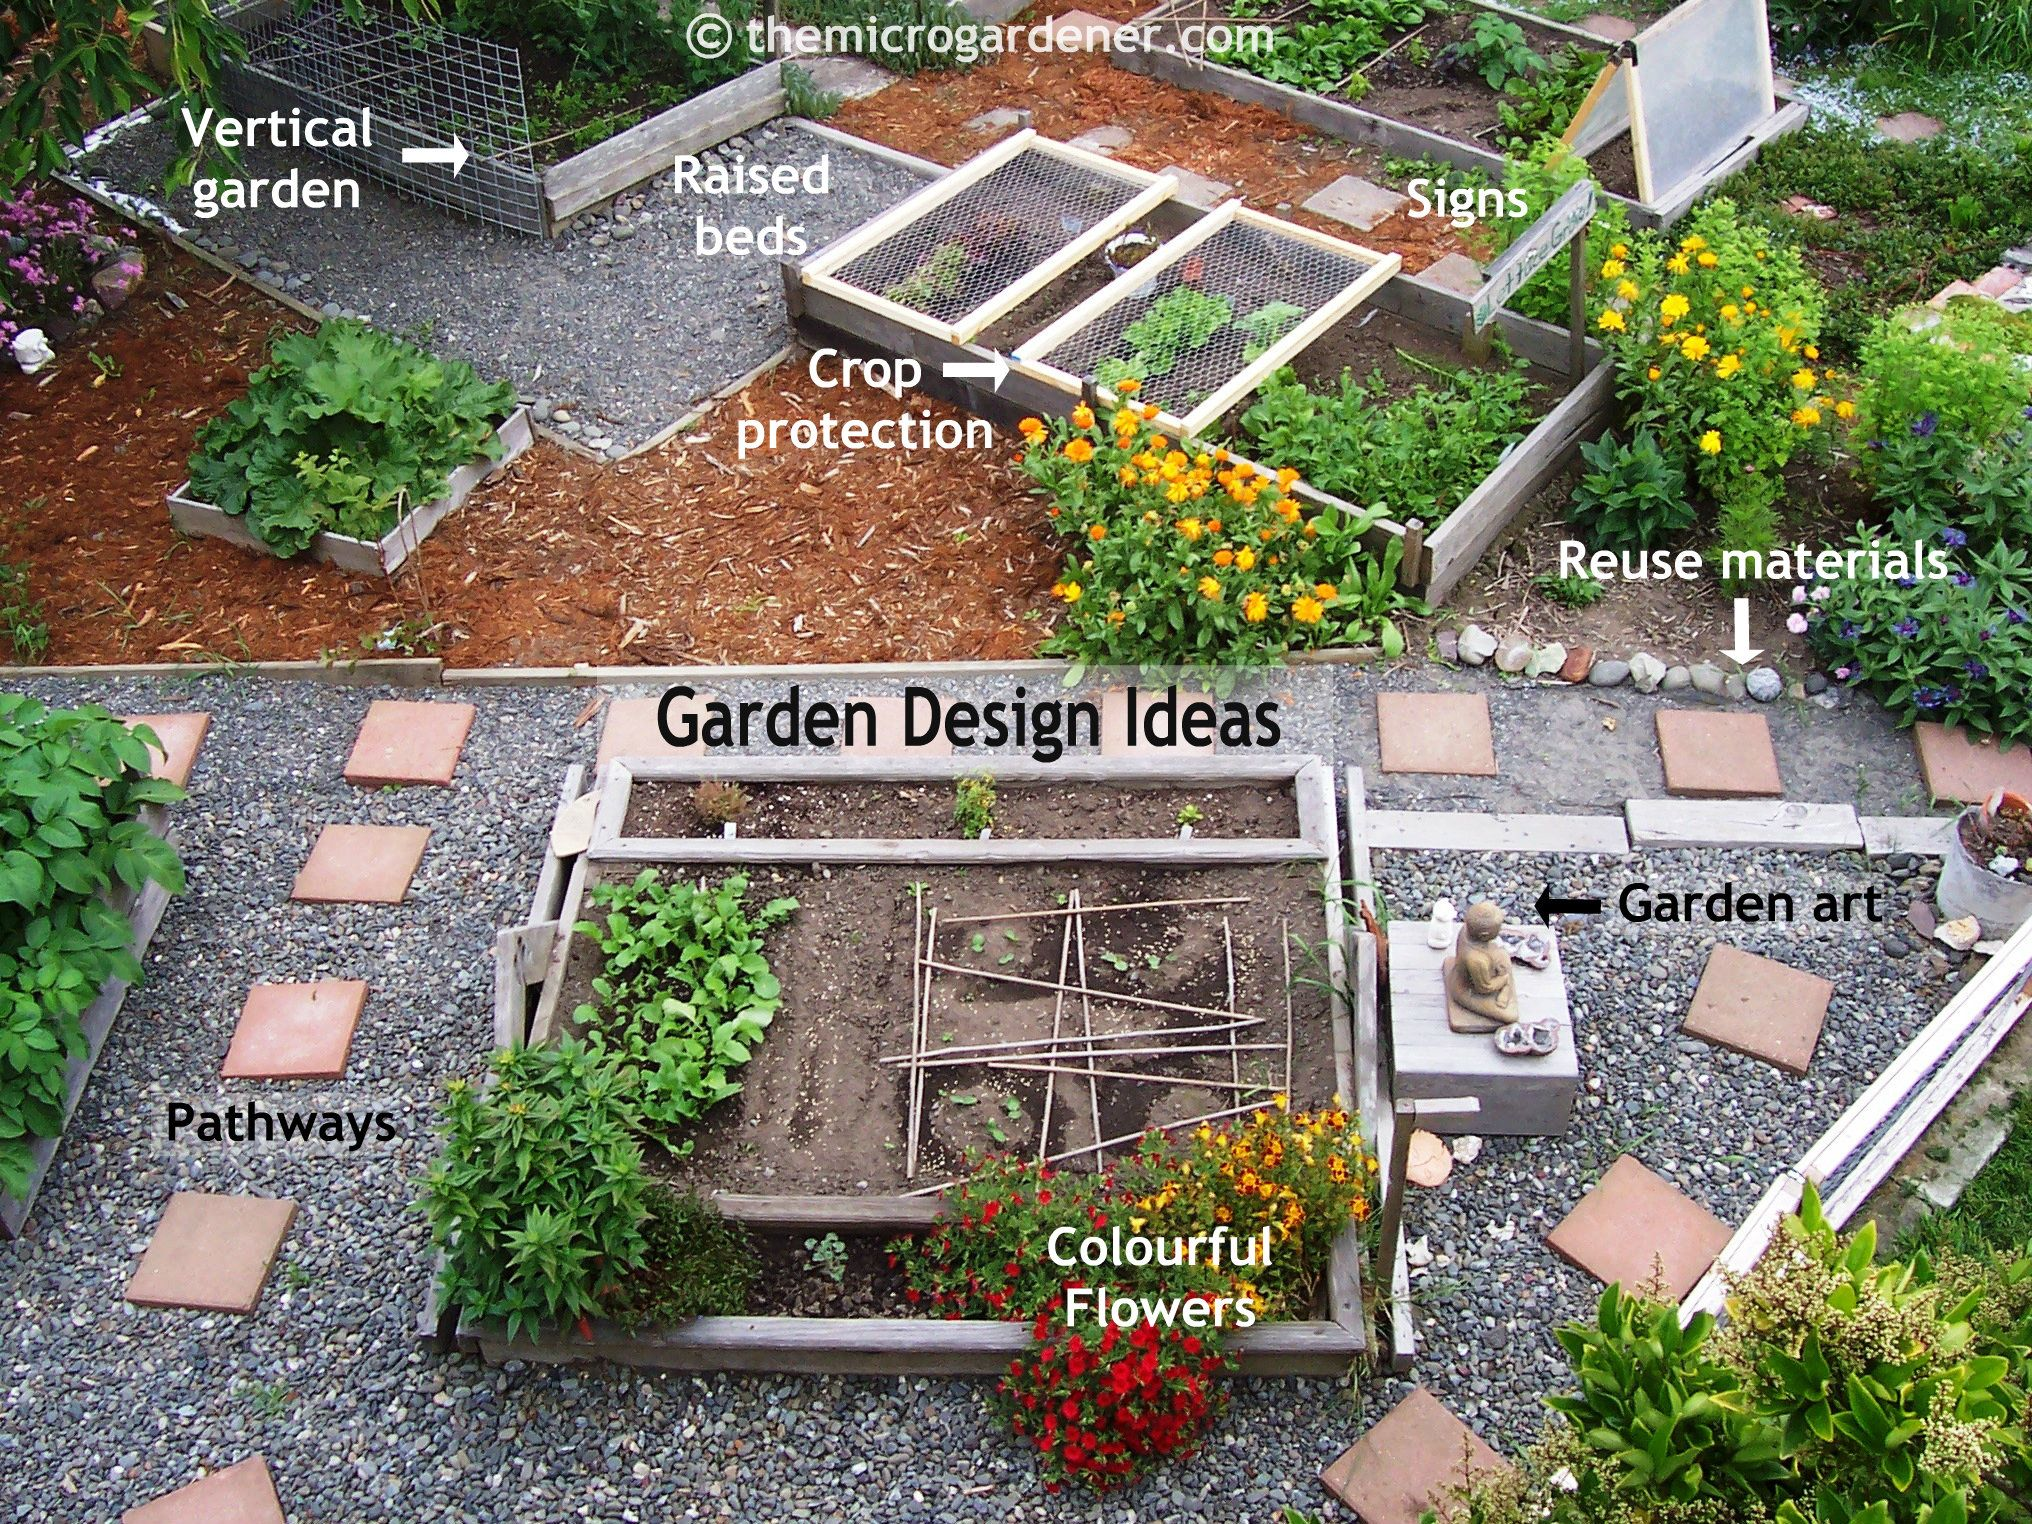 Small garden design ideas on pinterest vertical gardens for Tiny garden design